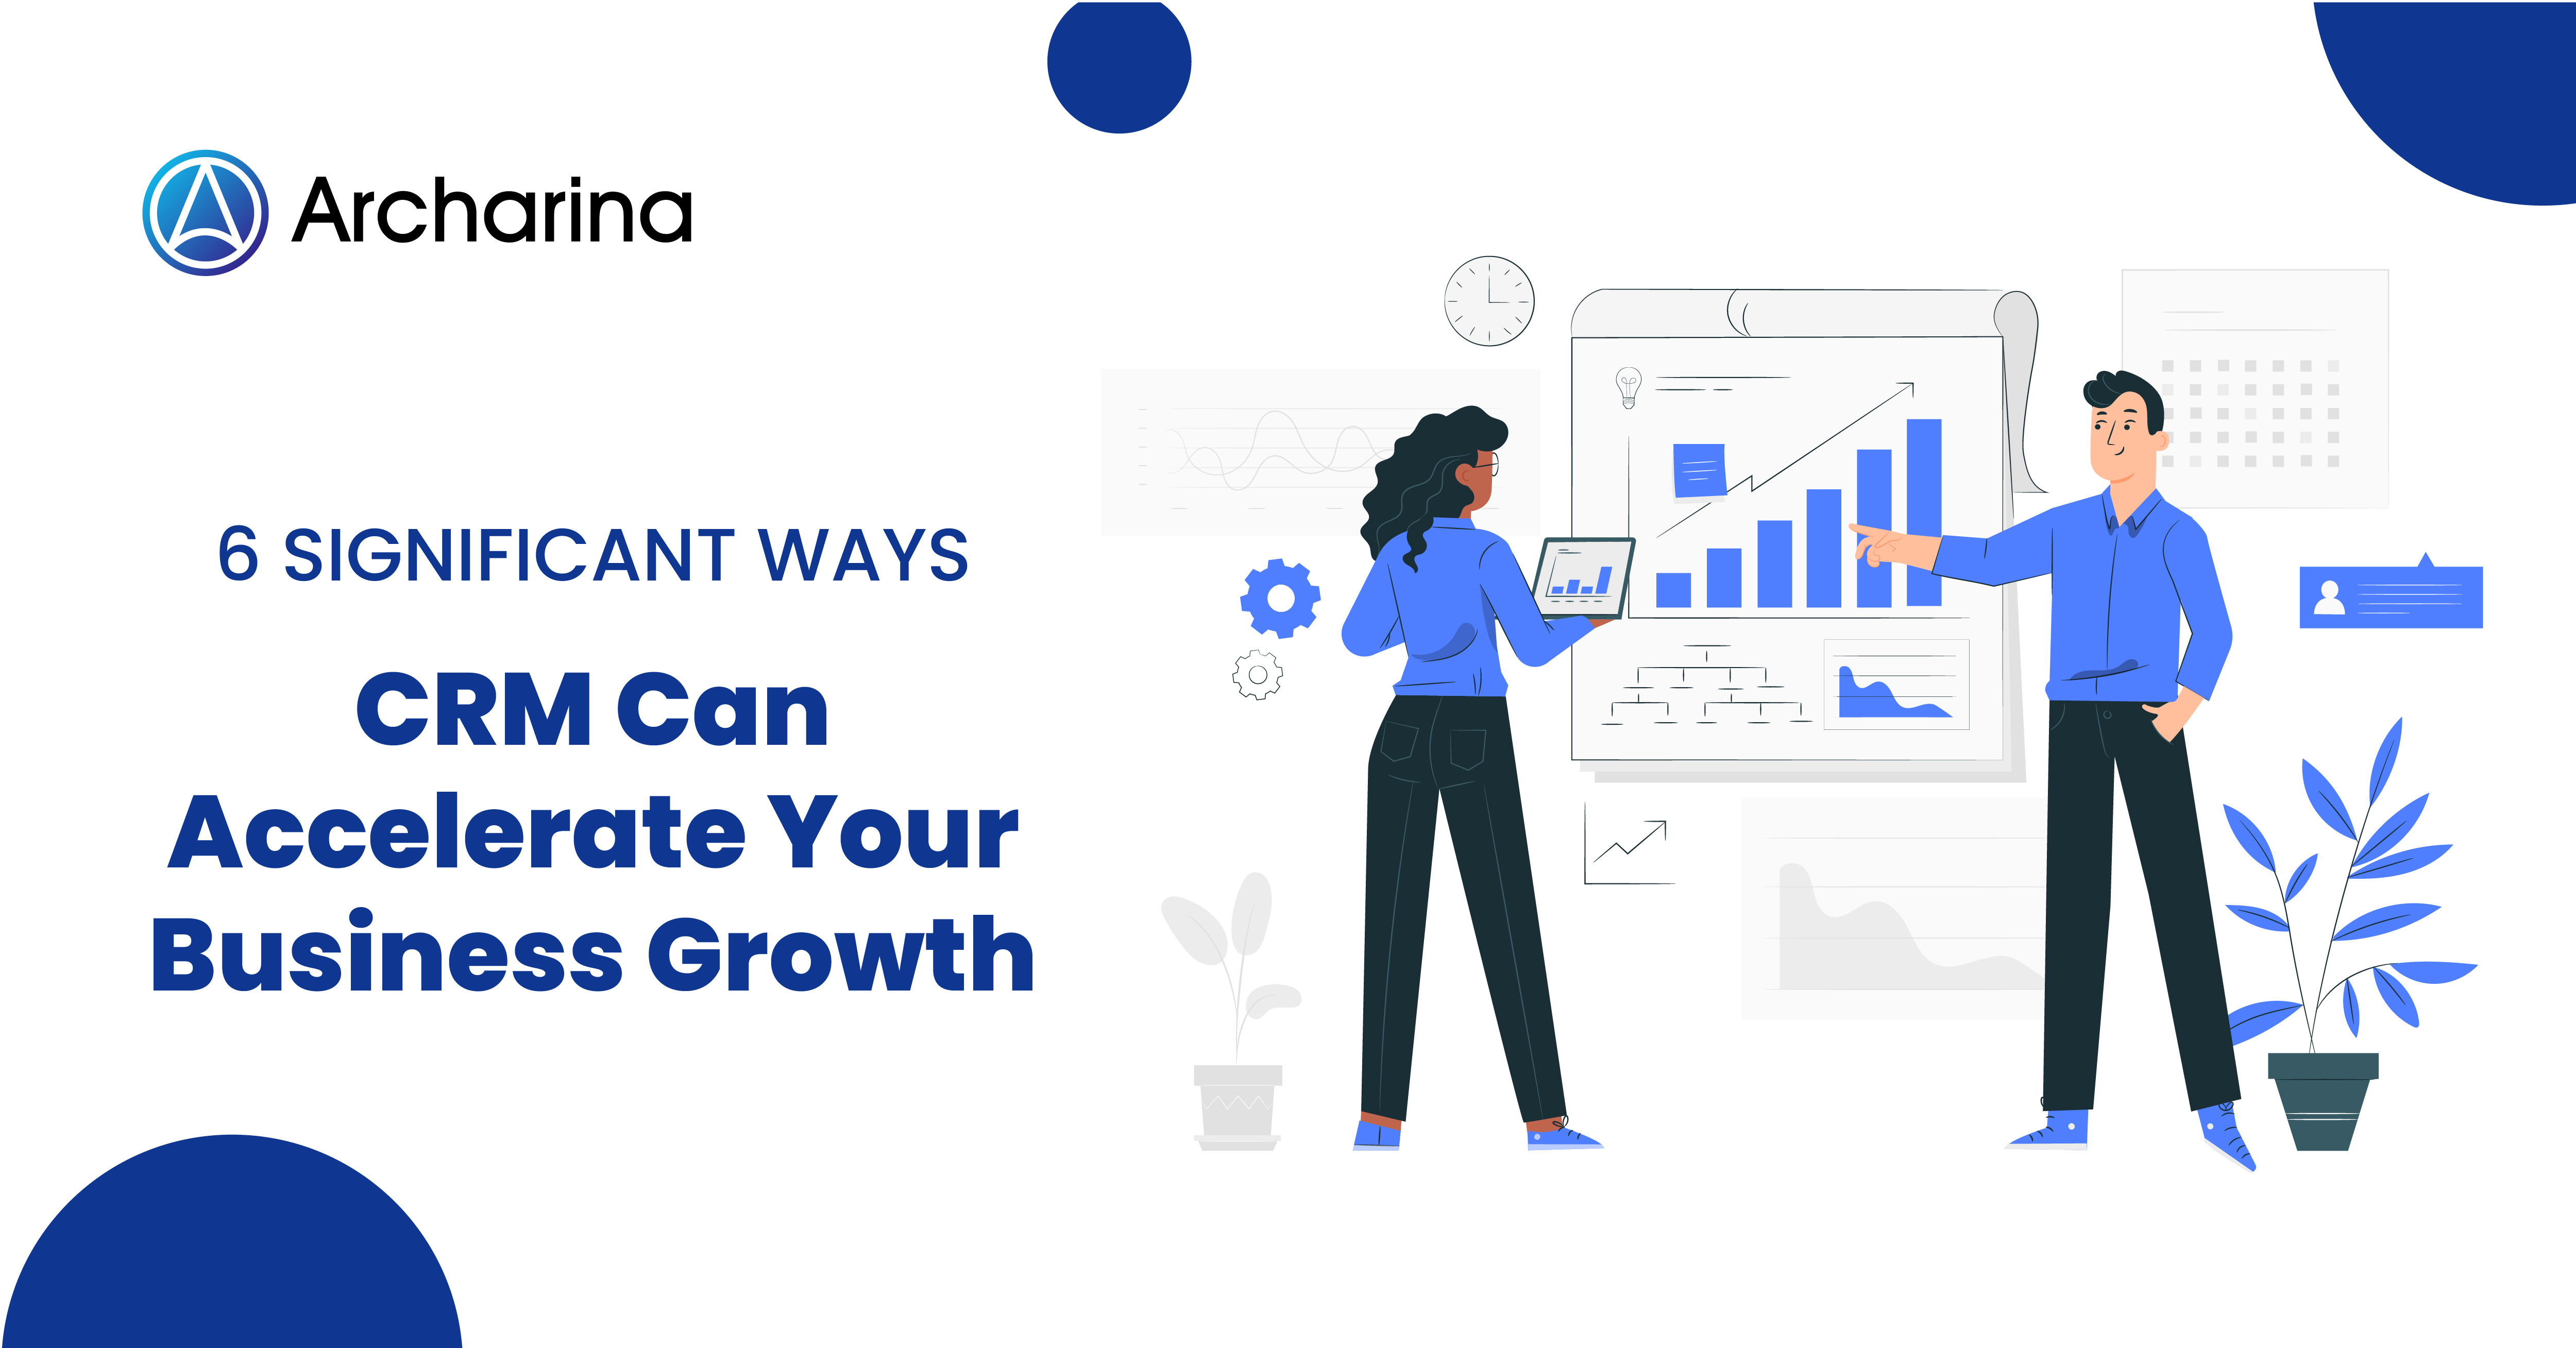 6 Significant Ways CRM Can Accelerate Your Business Growth